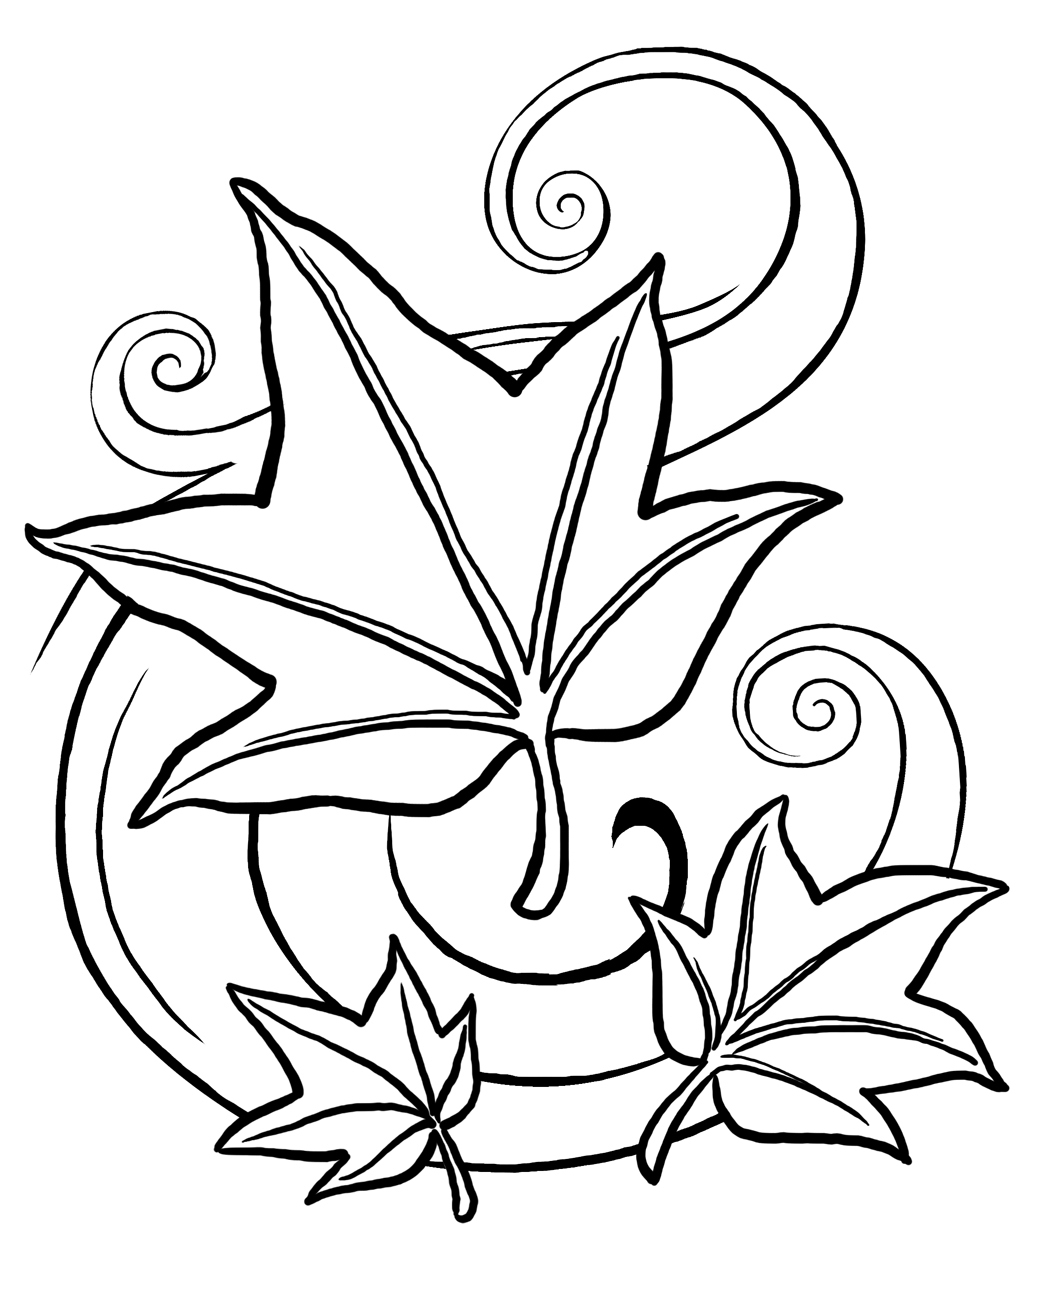 printable leaf coloring page - Tree Leaves Coloring Page